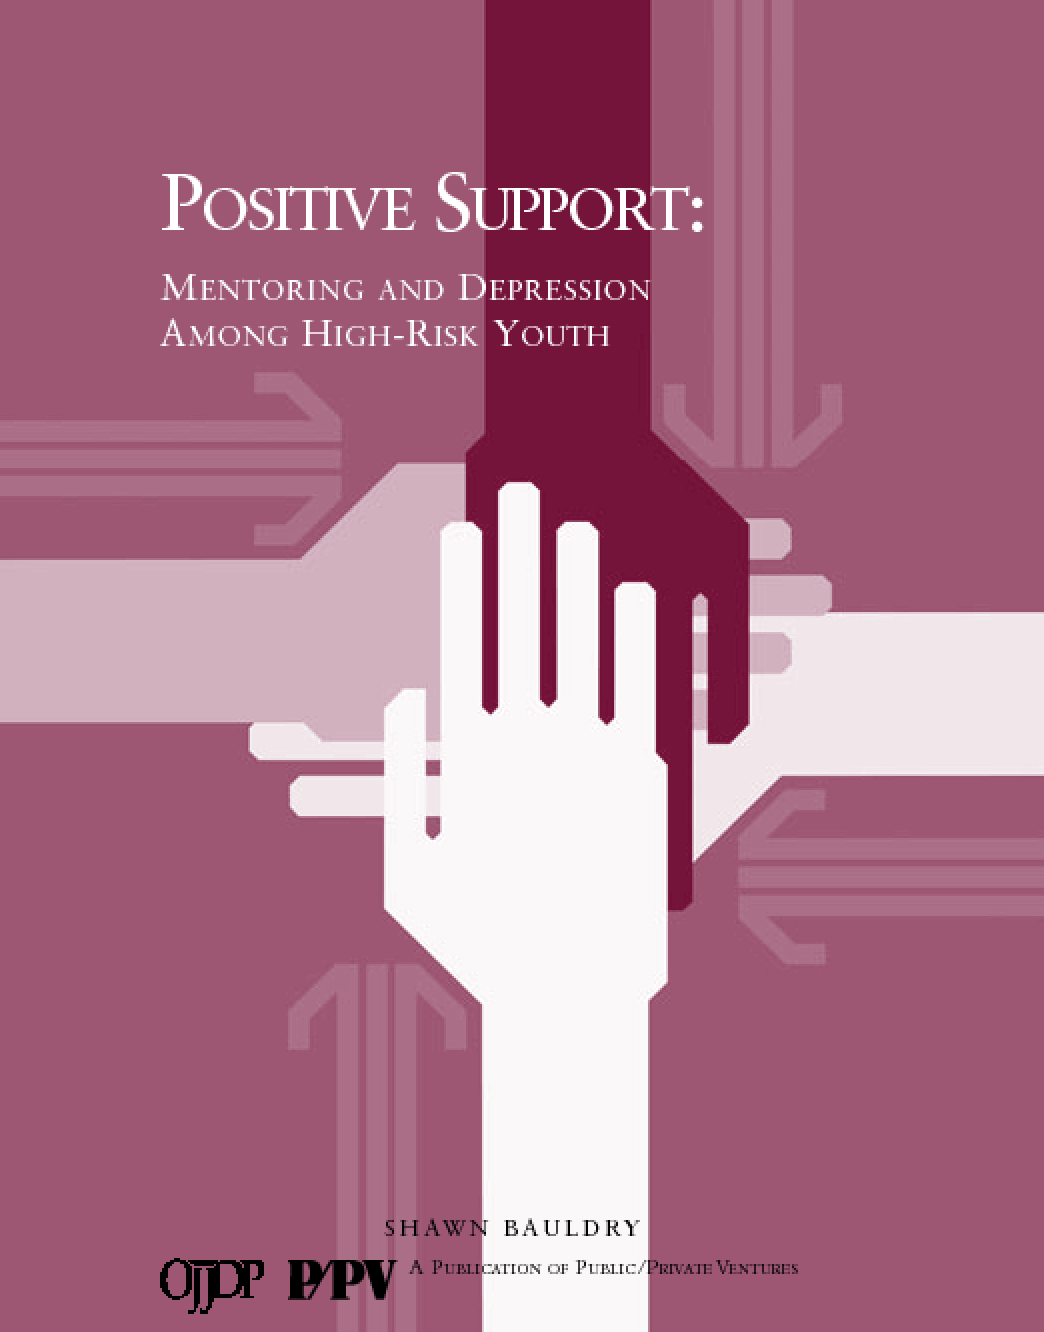 Positive Support: Mentoring and Depression Among High-Risk Youth